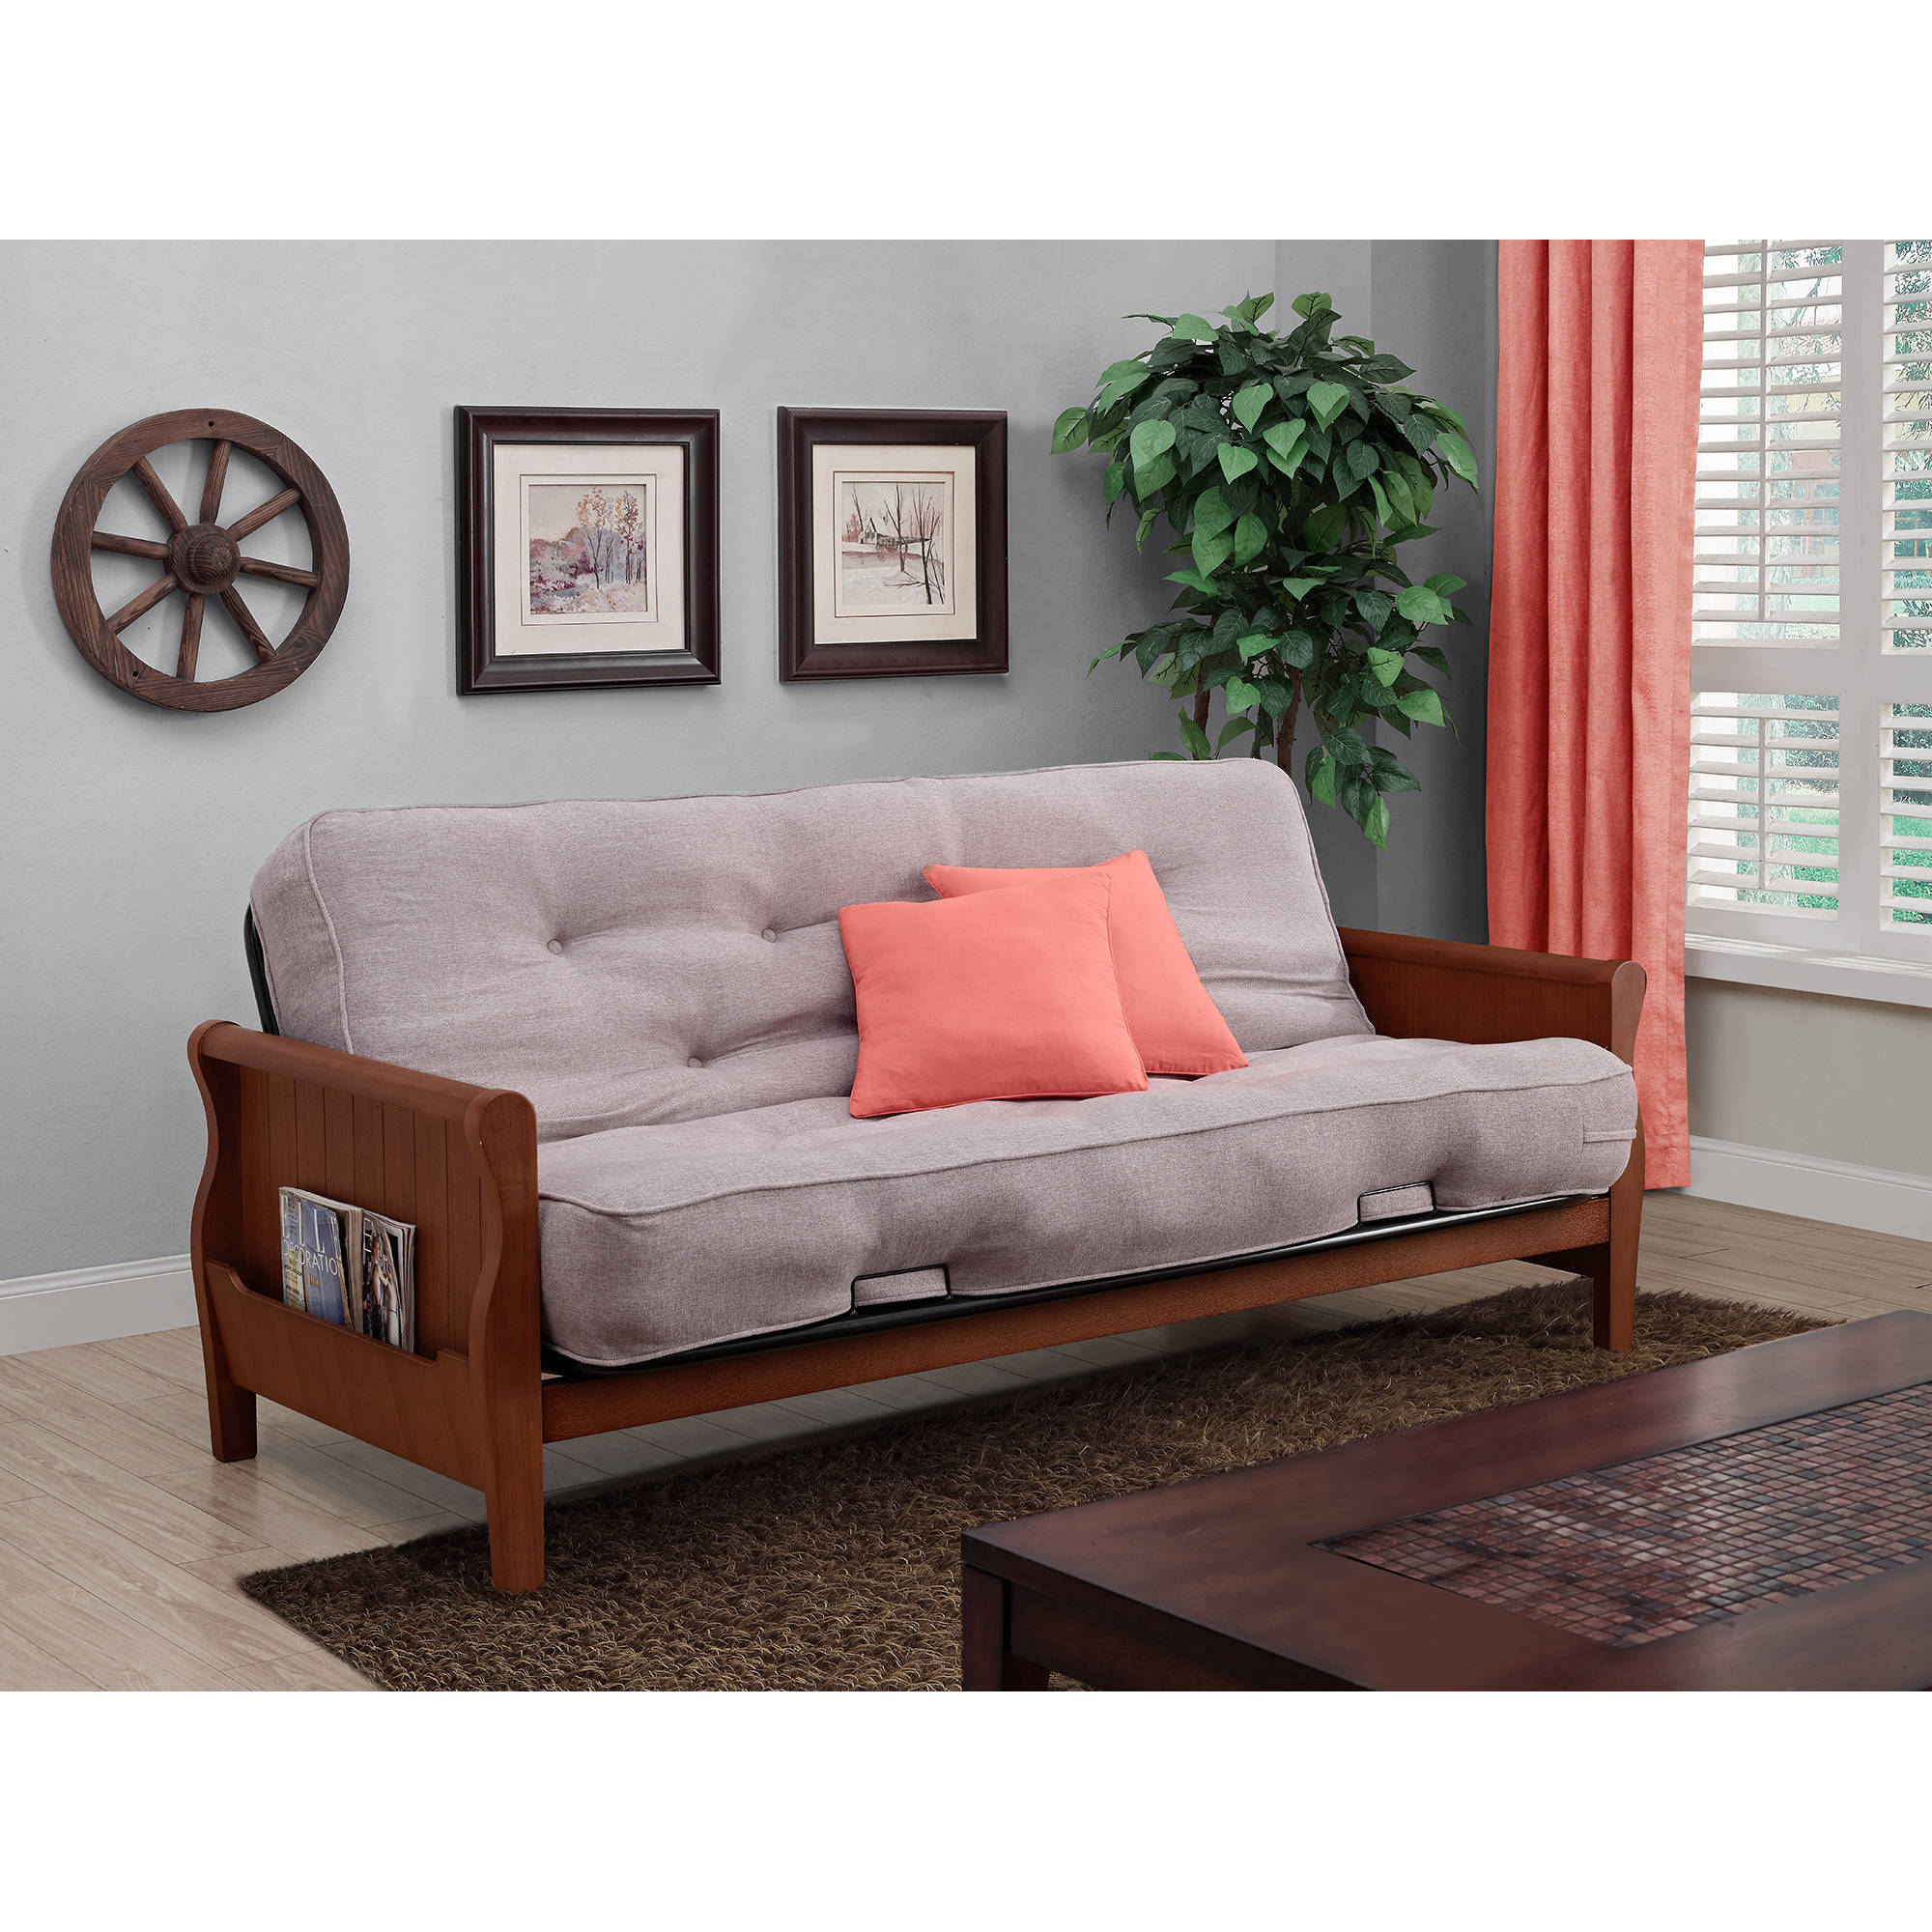 better homes and gardens wood arm futon with 8   coil mattress multiple colors better homes and gardens wood arm futon with 8   coil mattress      rh   walmart